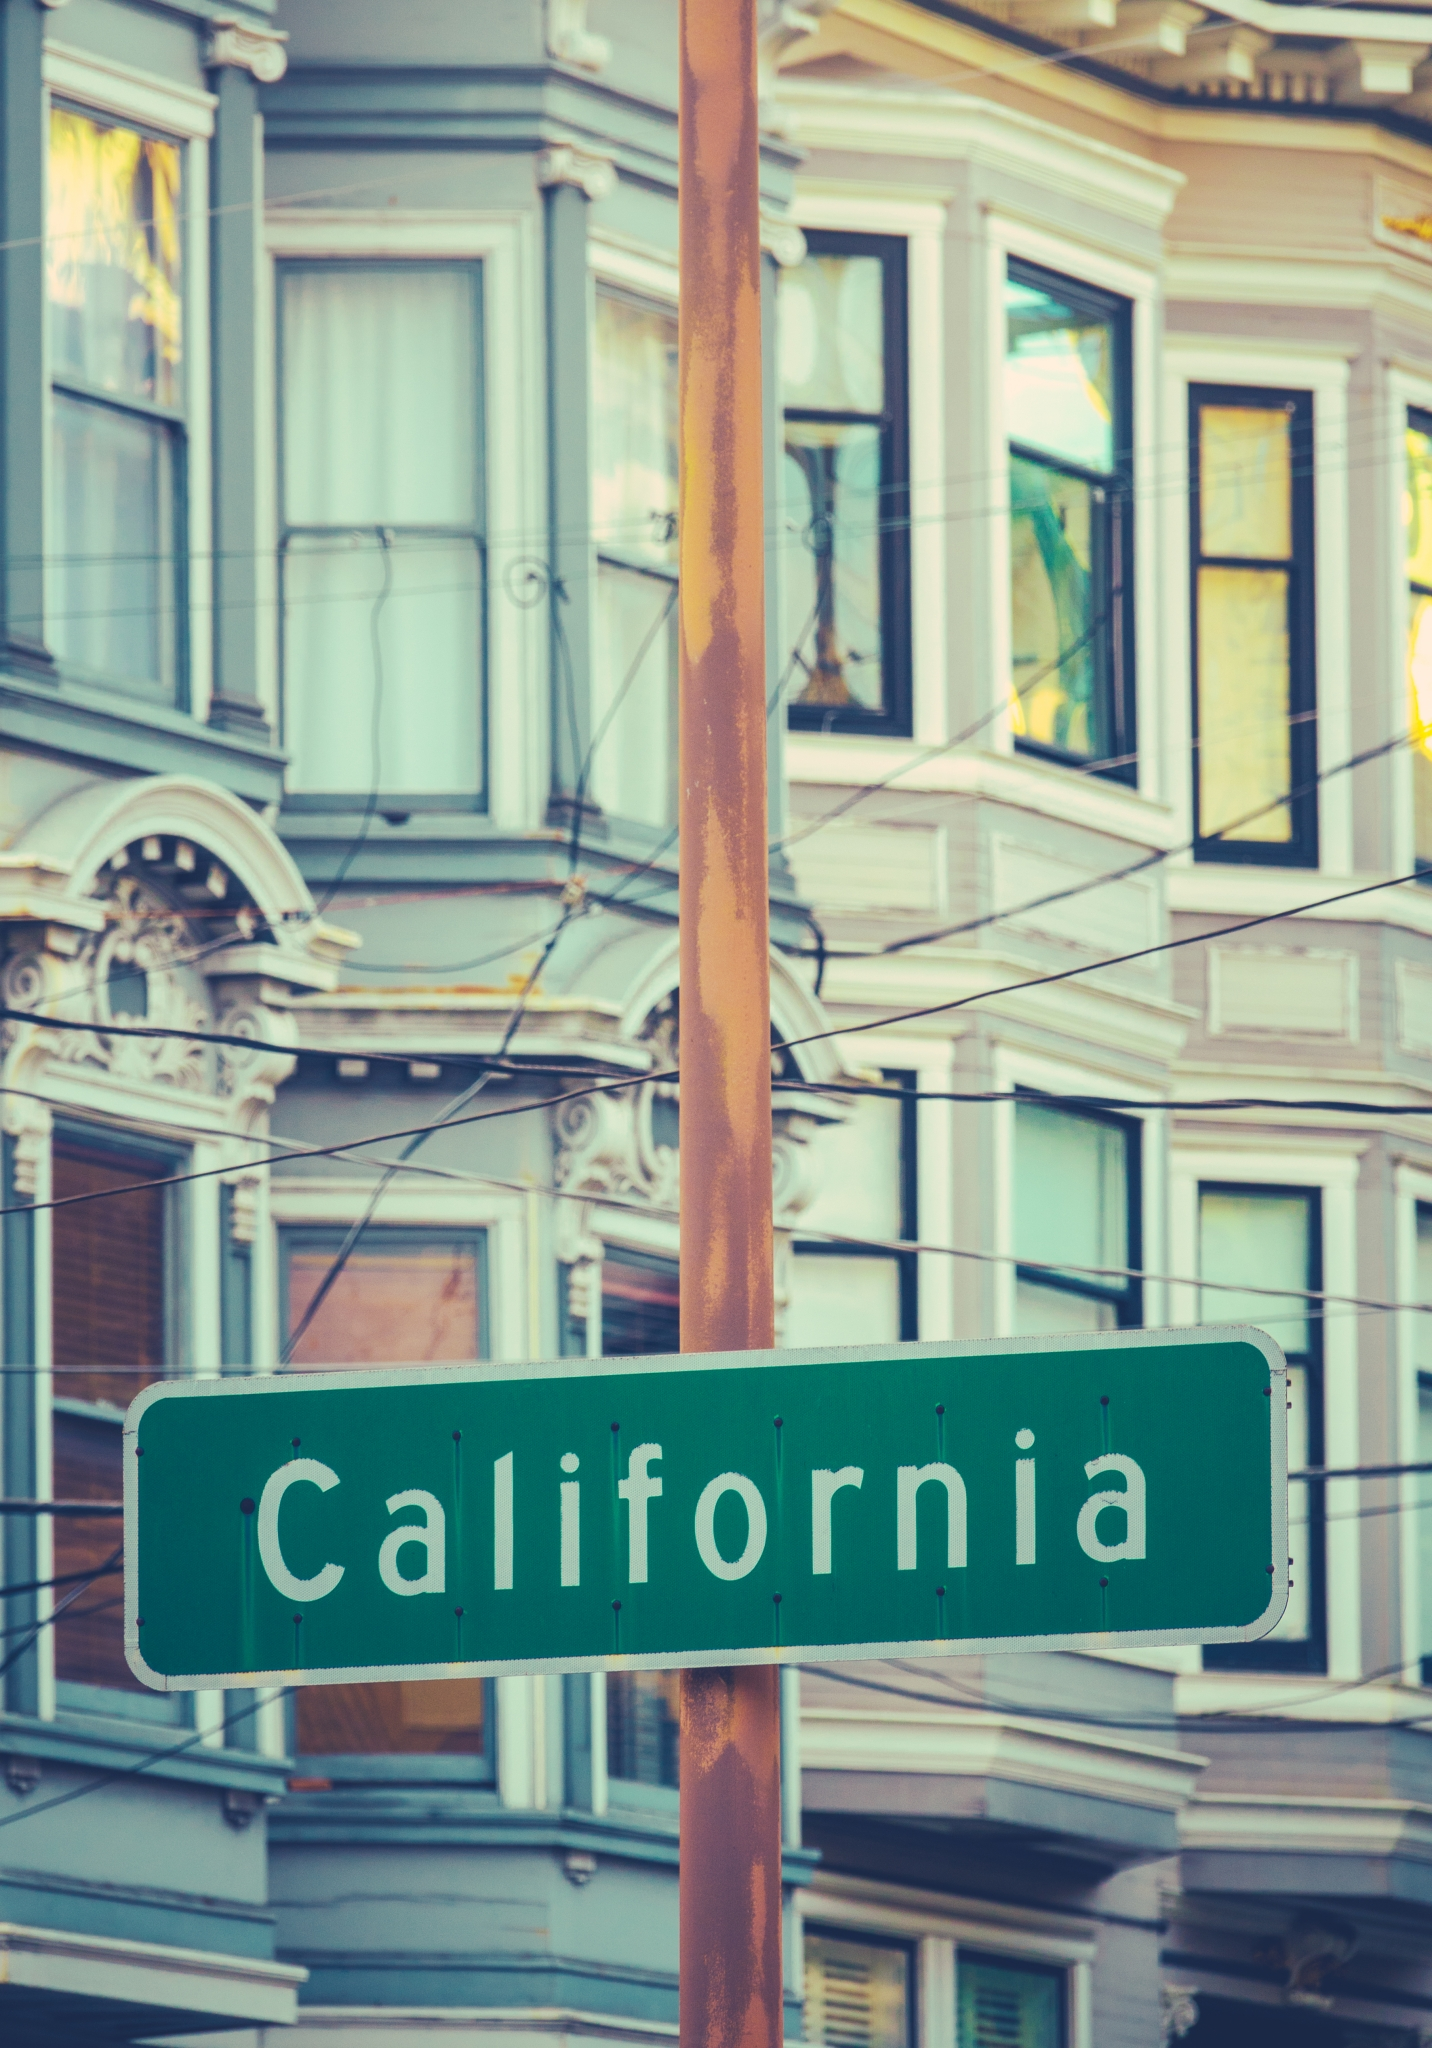 6 Tips for Finding the perfect California Rental Home